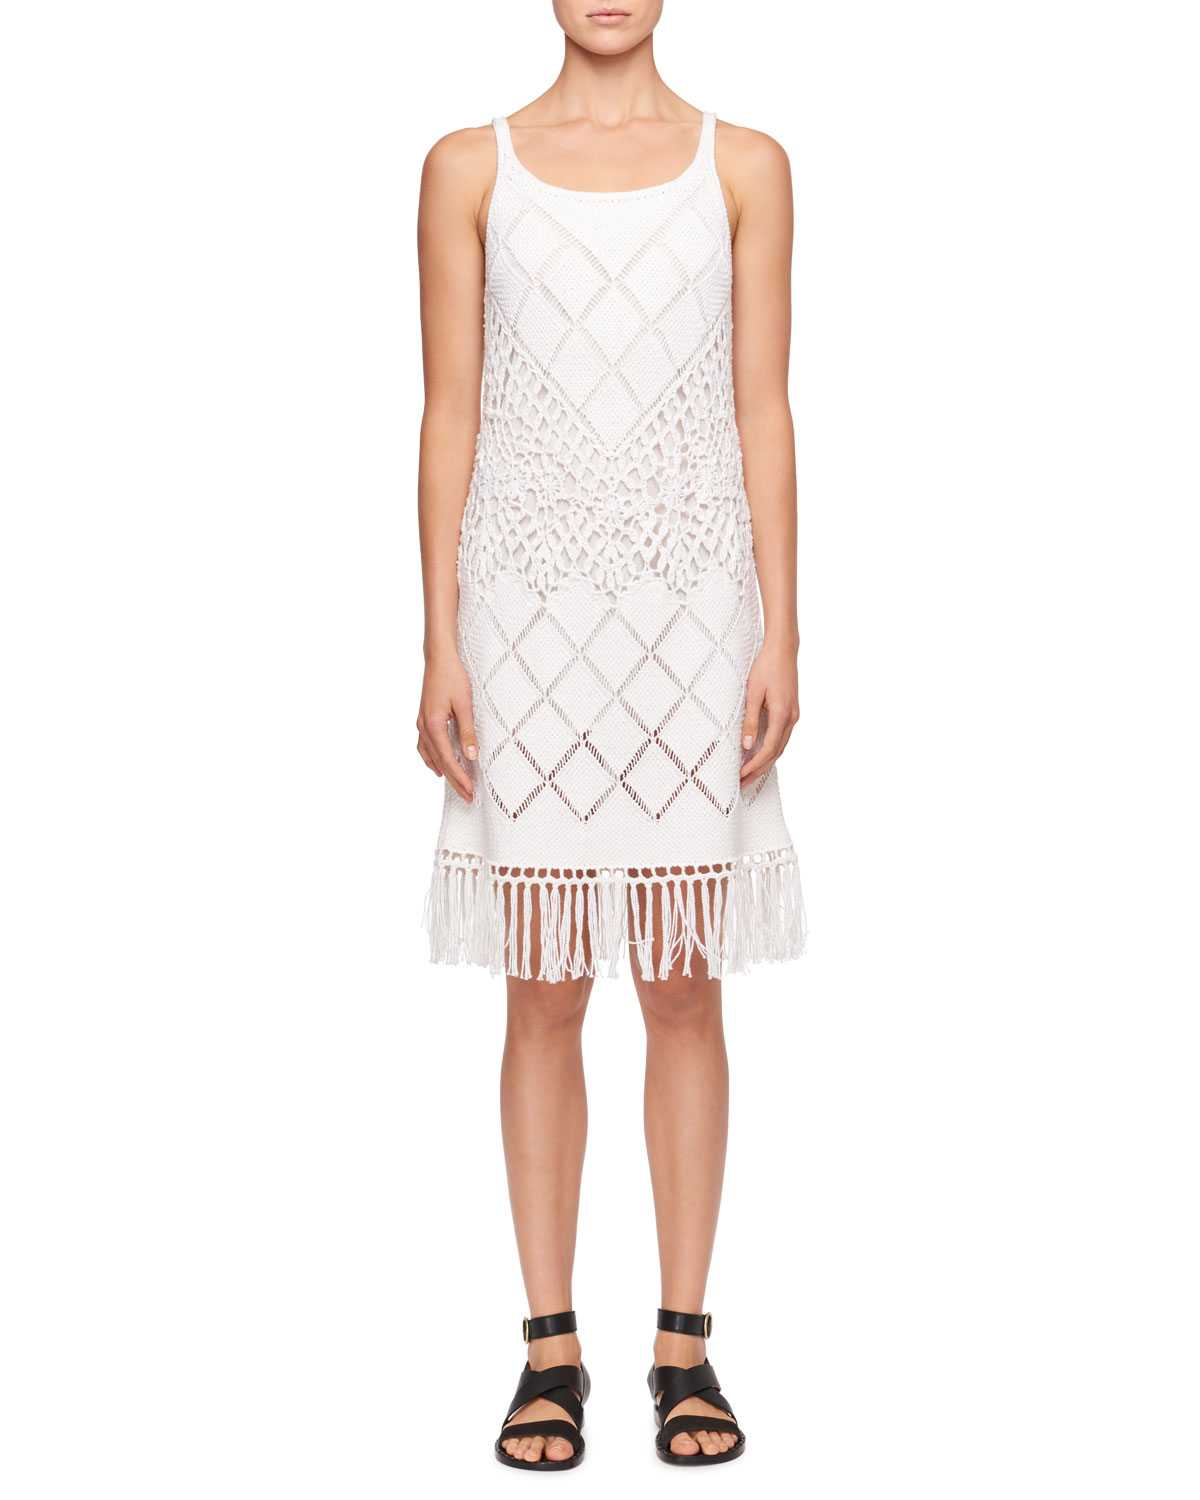 Sleeveless Scoop-Neck Crochet-Knit Dress with Fringe-Hem